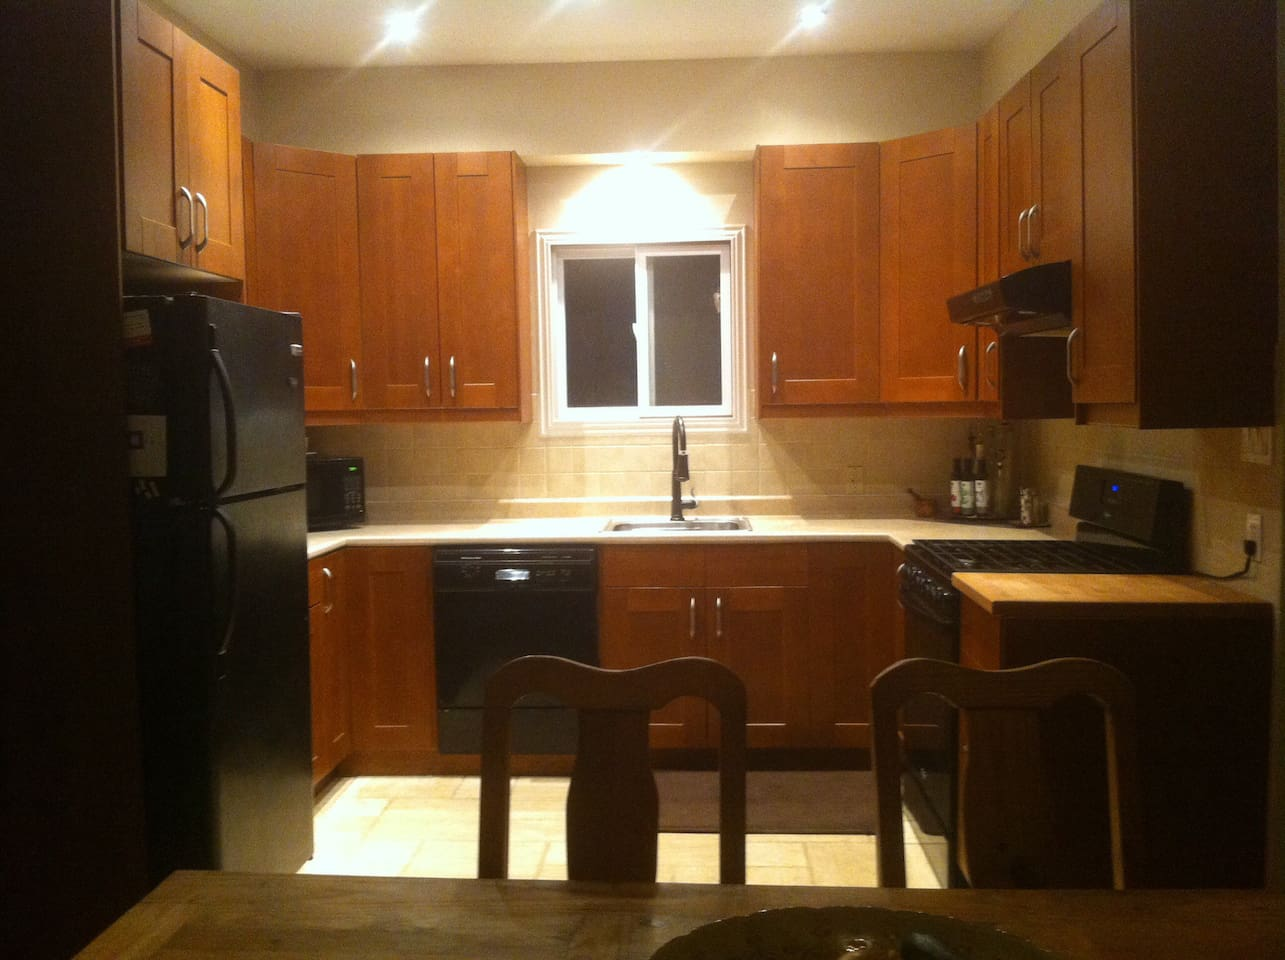 This is my lovely kitchen with all of the amenities: DW, blender, microwave,grill, etc